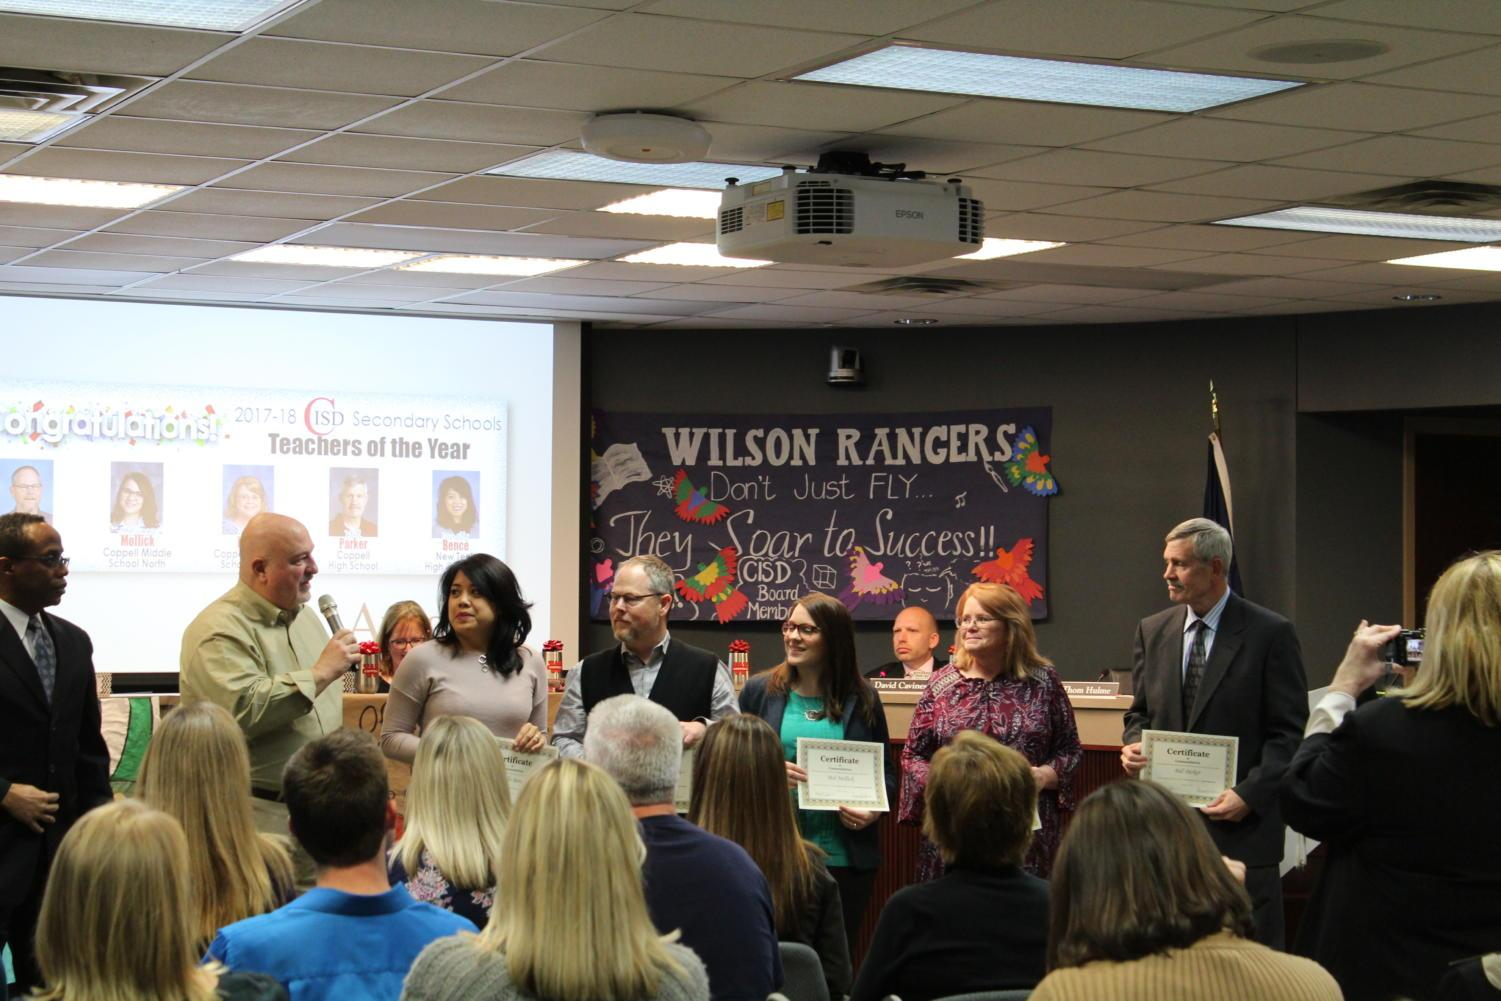 Coppell ISD honors teachers of the year from all secondary schools in the district in light of the January recognition month, Monday night in the Vonita White Administration Building. The district recognizes these teachers for their excellence in the teaching that they exhibit in school every day as they strive to improve their students knowledge and learning.